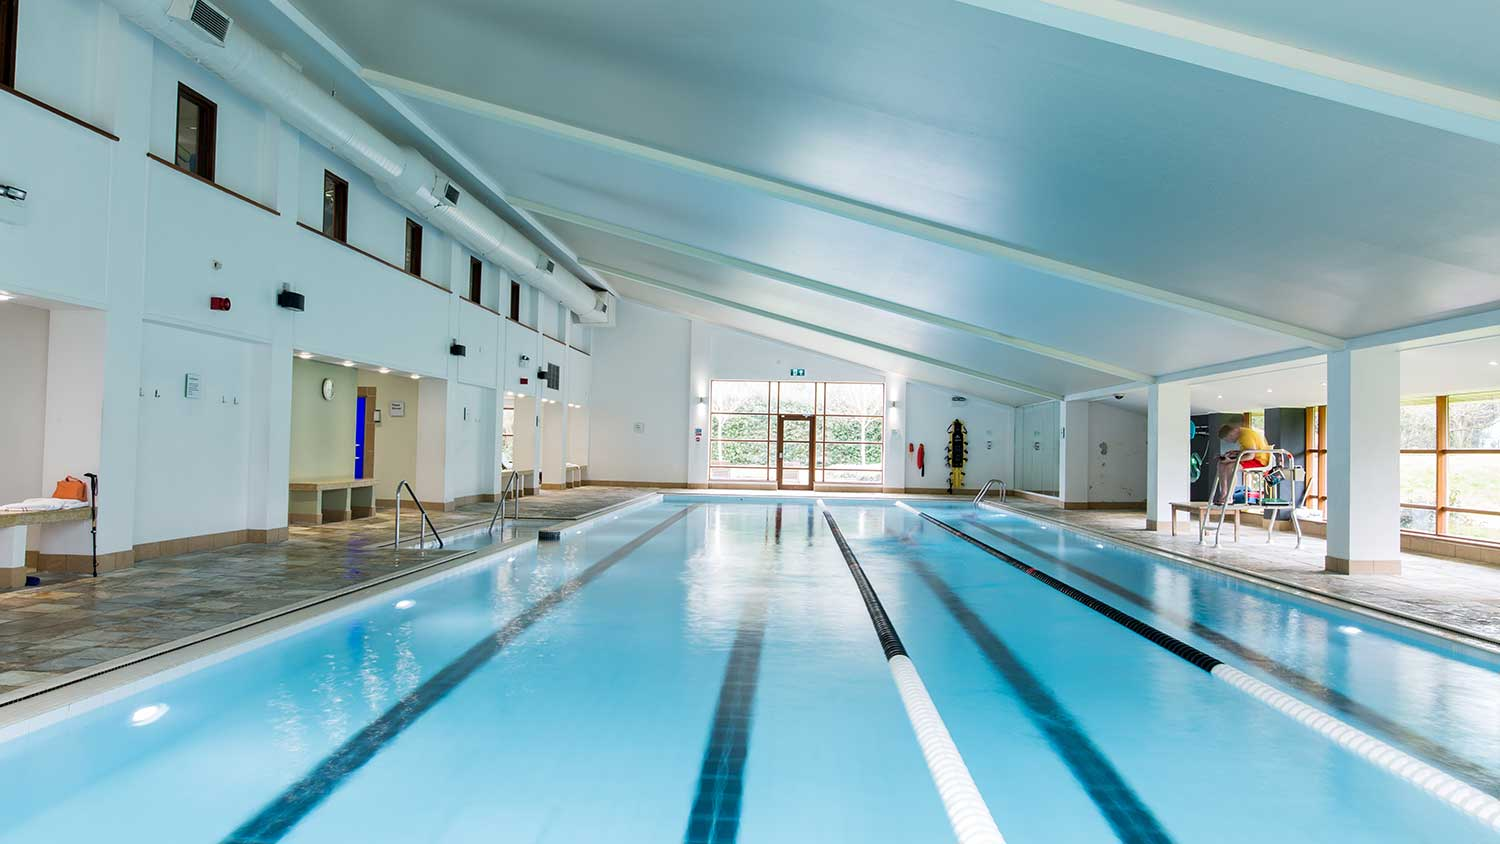 Gym in chislehurst fitness wellbeing nuffield health - Outdoor swimming pool covent garden ...